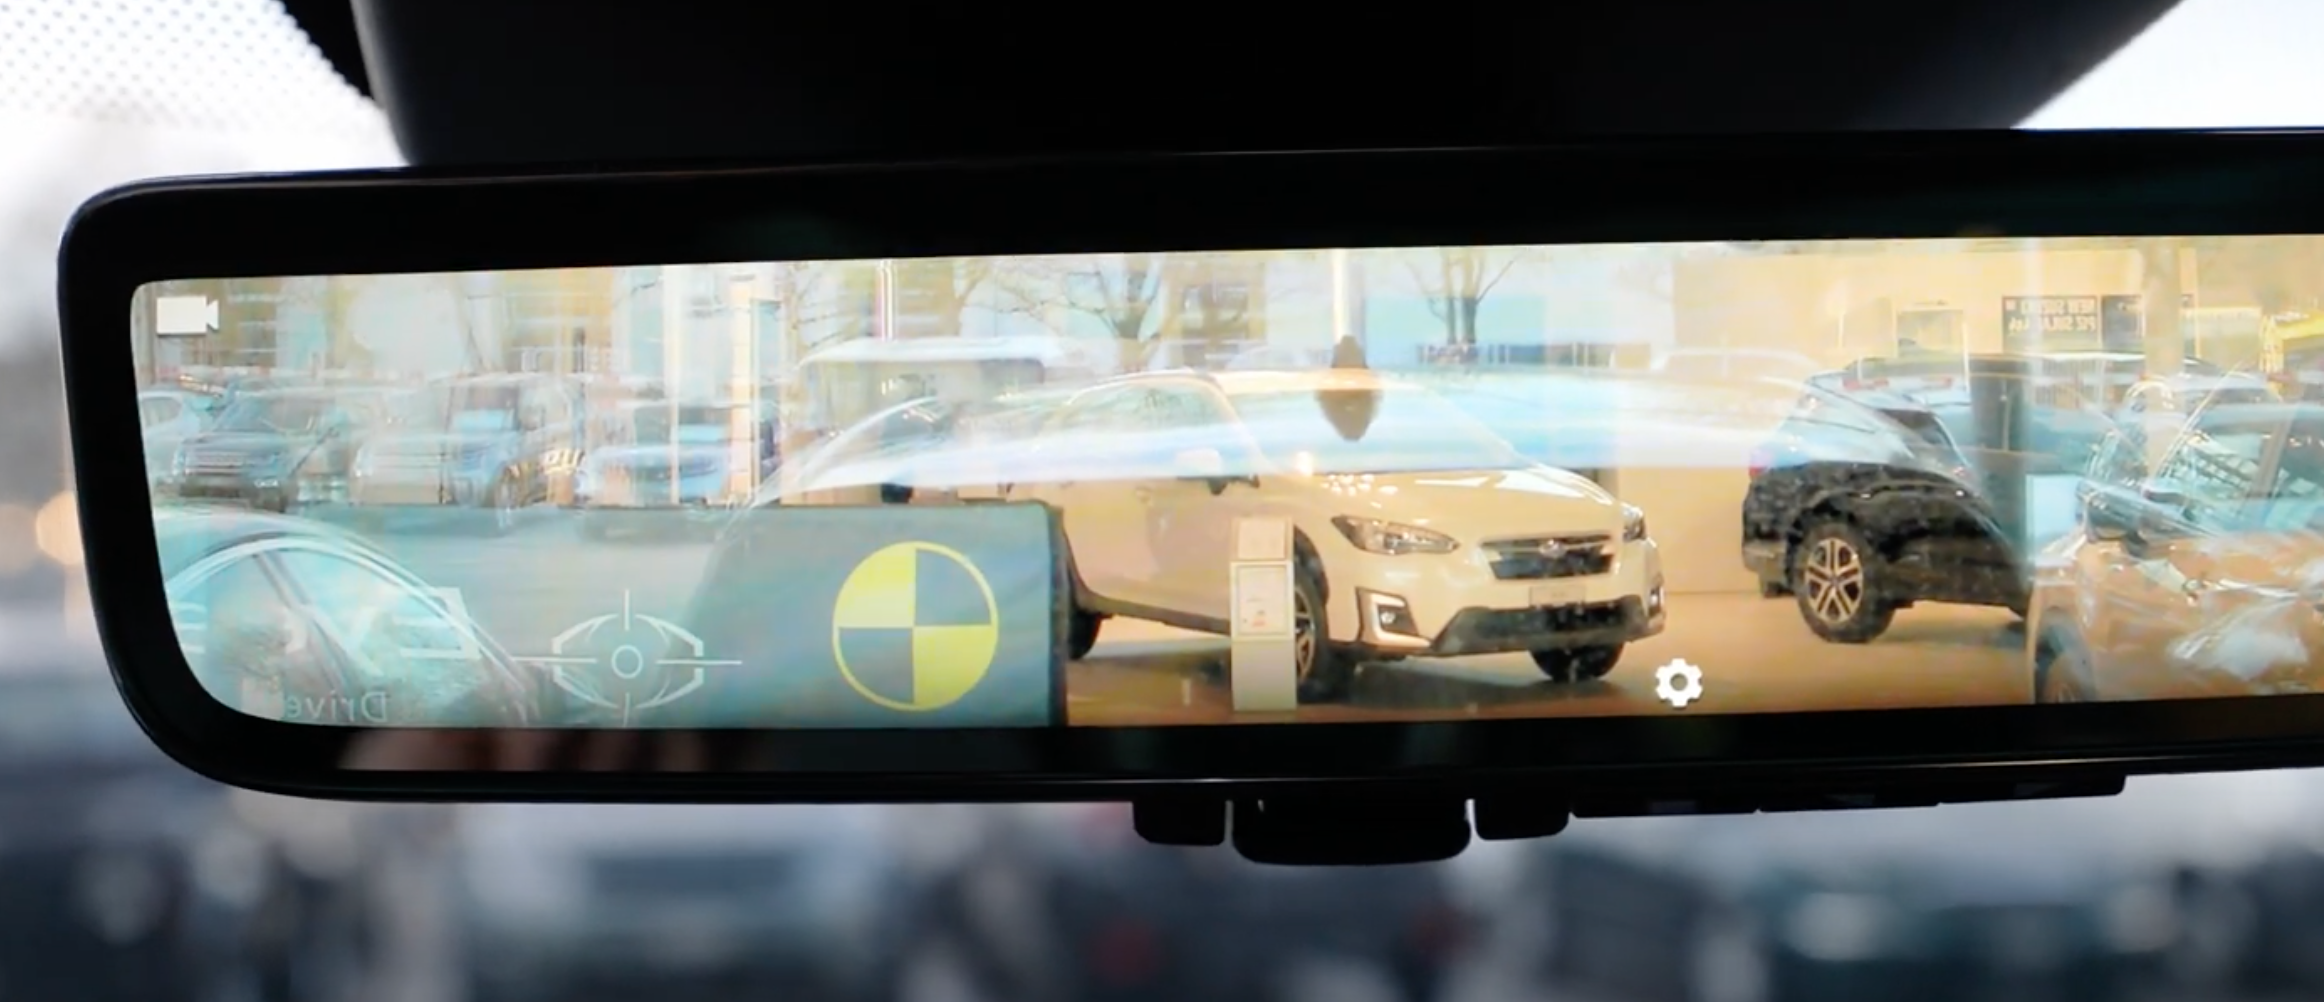 Rearview camera's content displayed on the rearview mirror